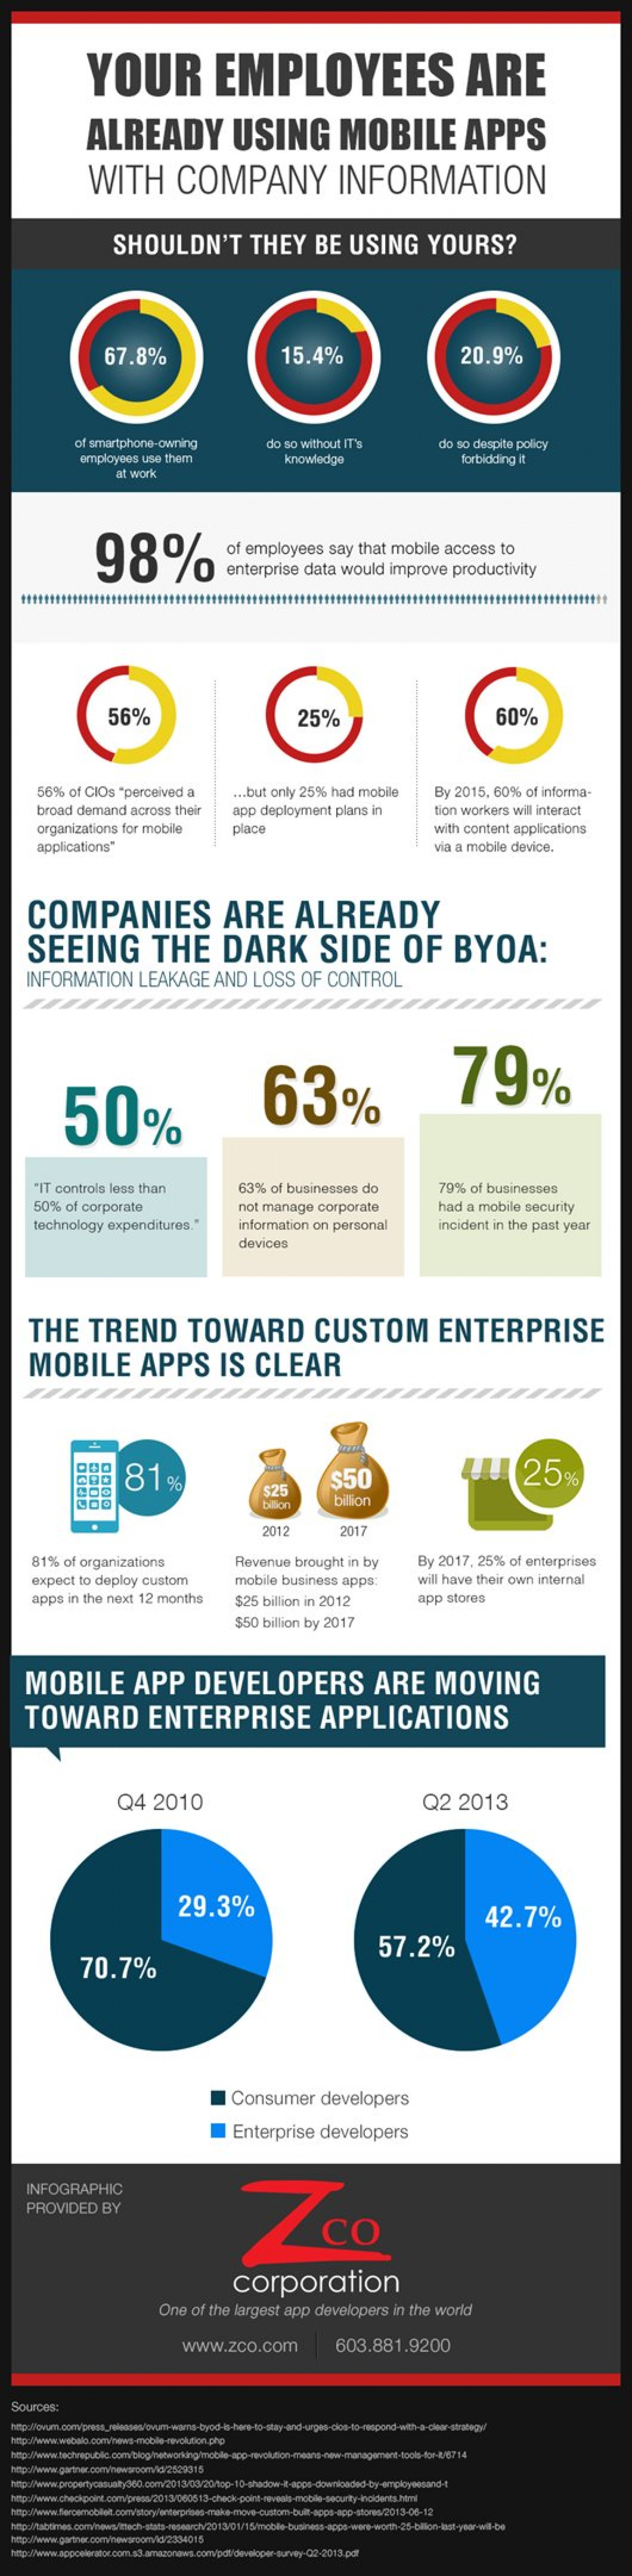 Your Employees are Already Using Mobile Apps with Company Information Infographic